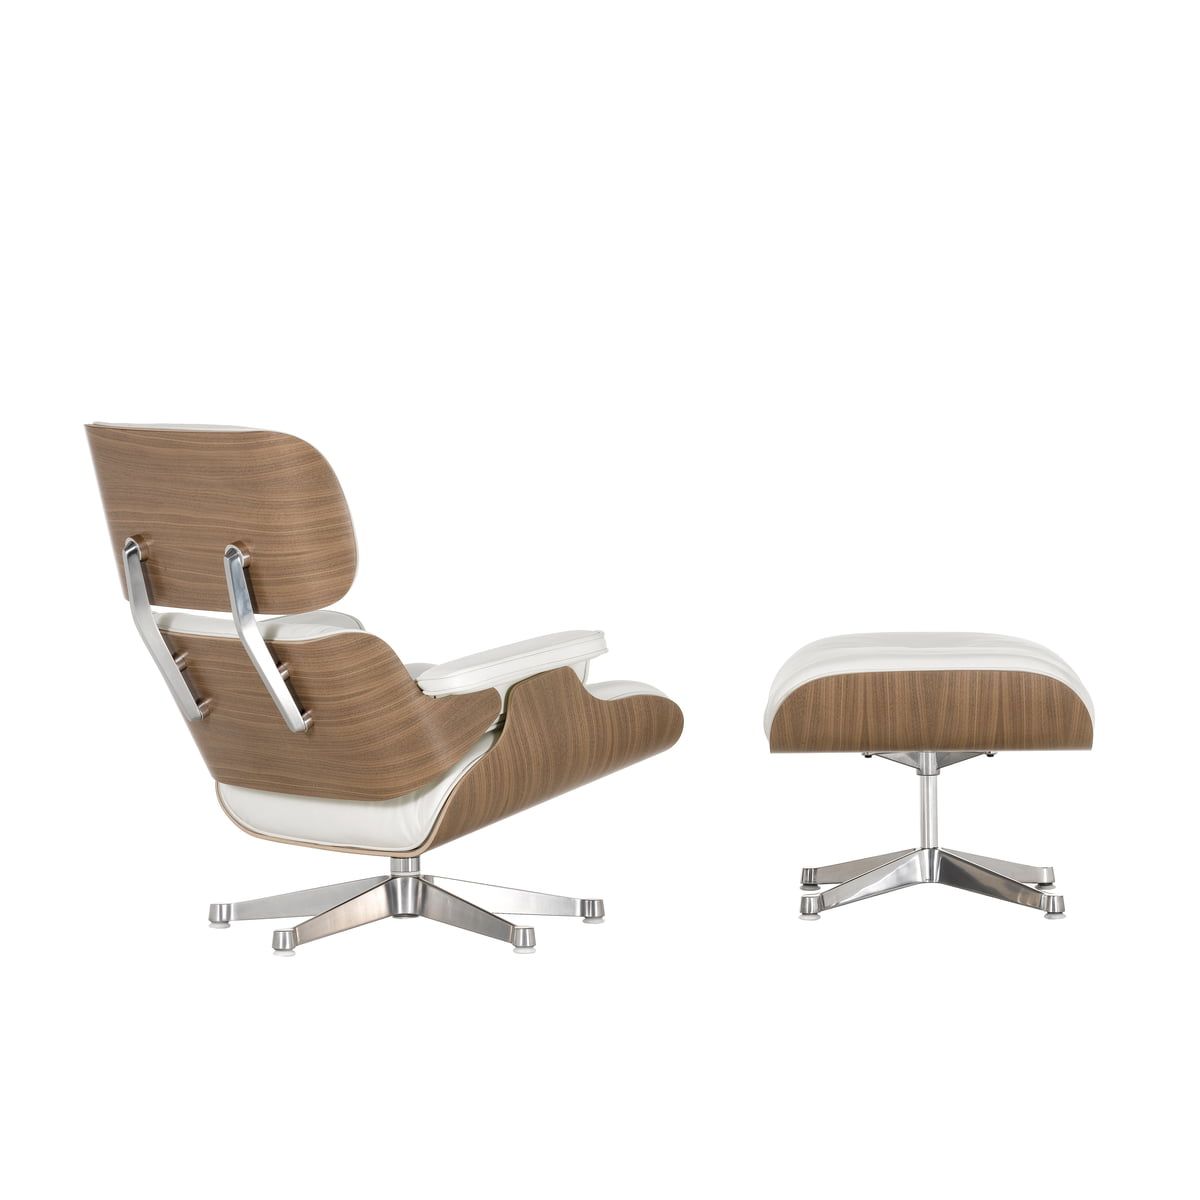 Eames Lounge Sessel Vitra Eames Lounge Chair And Ottoman Walnut White